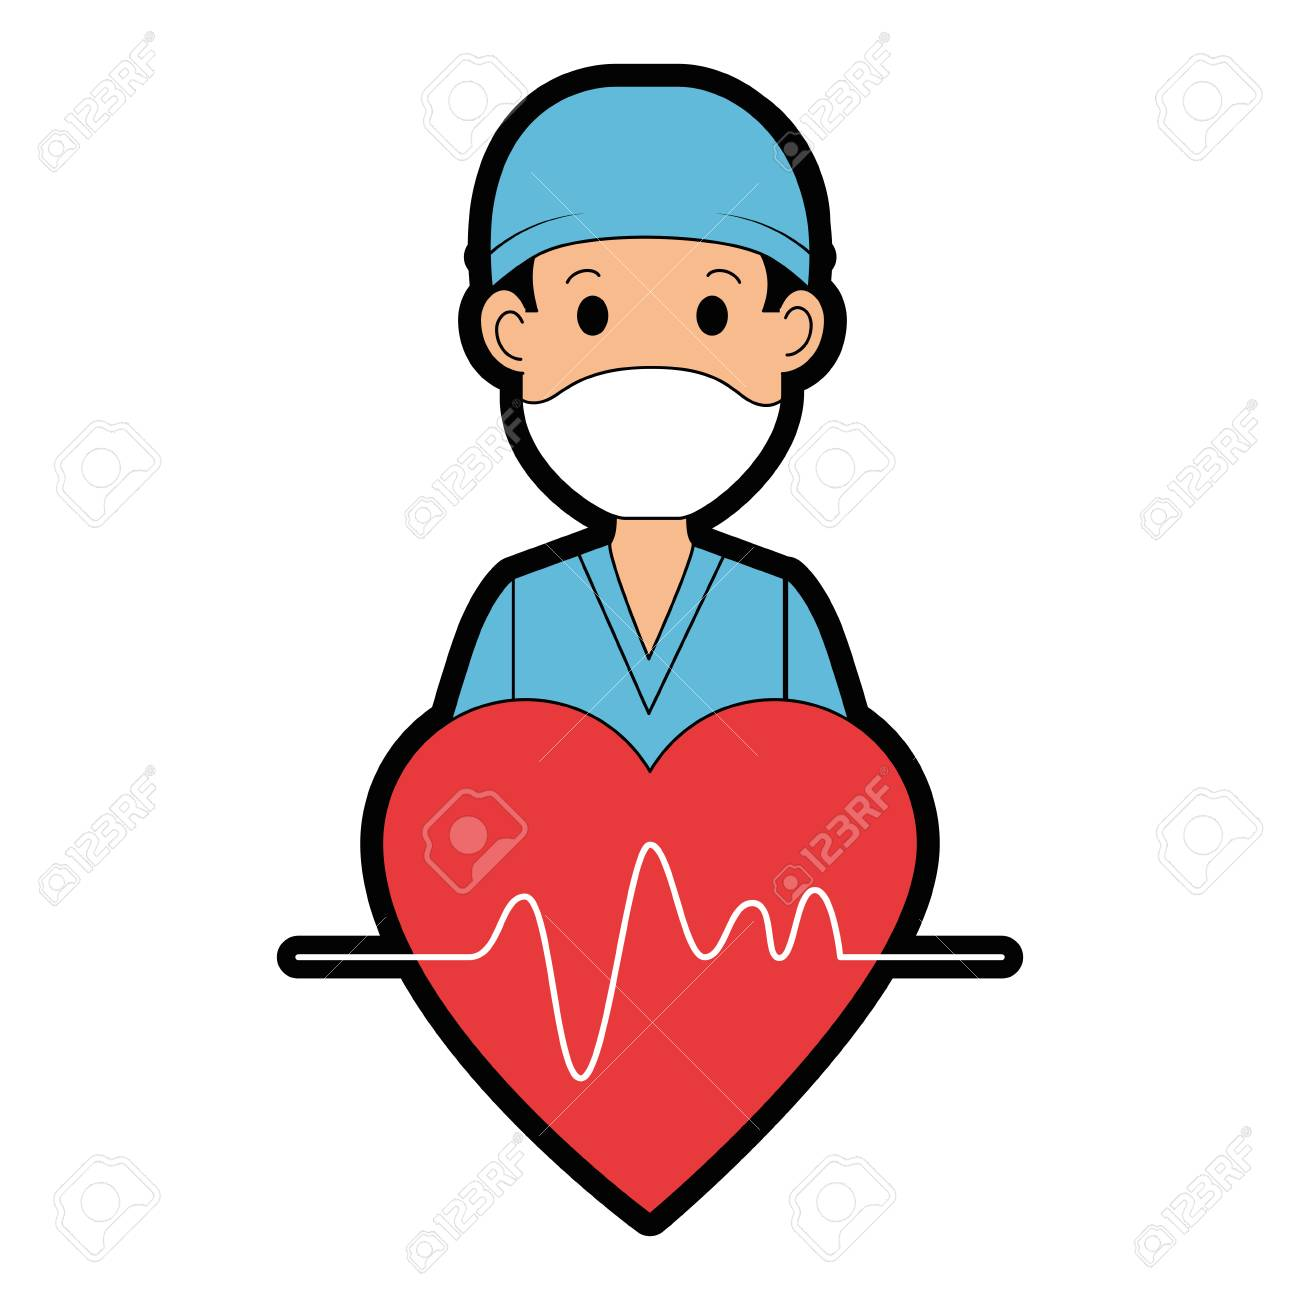 surgeon doctor with heart avatar character icon vector illustration...